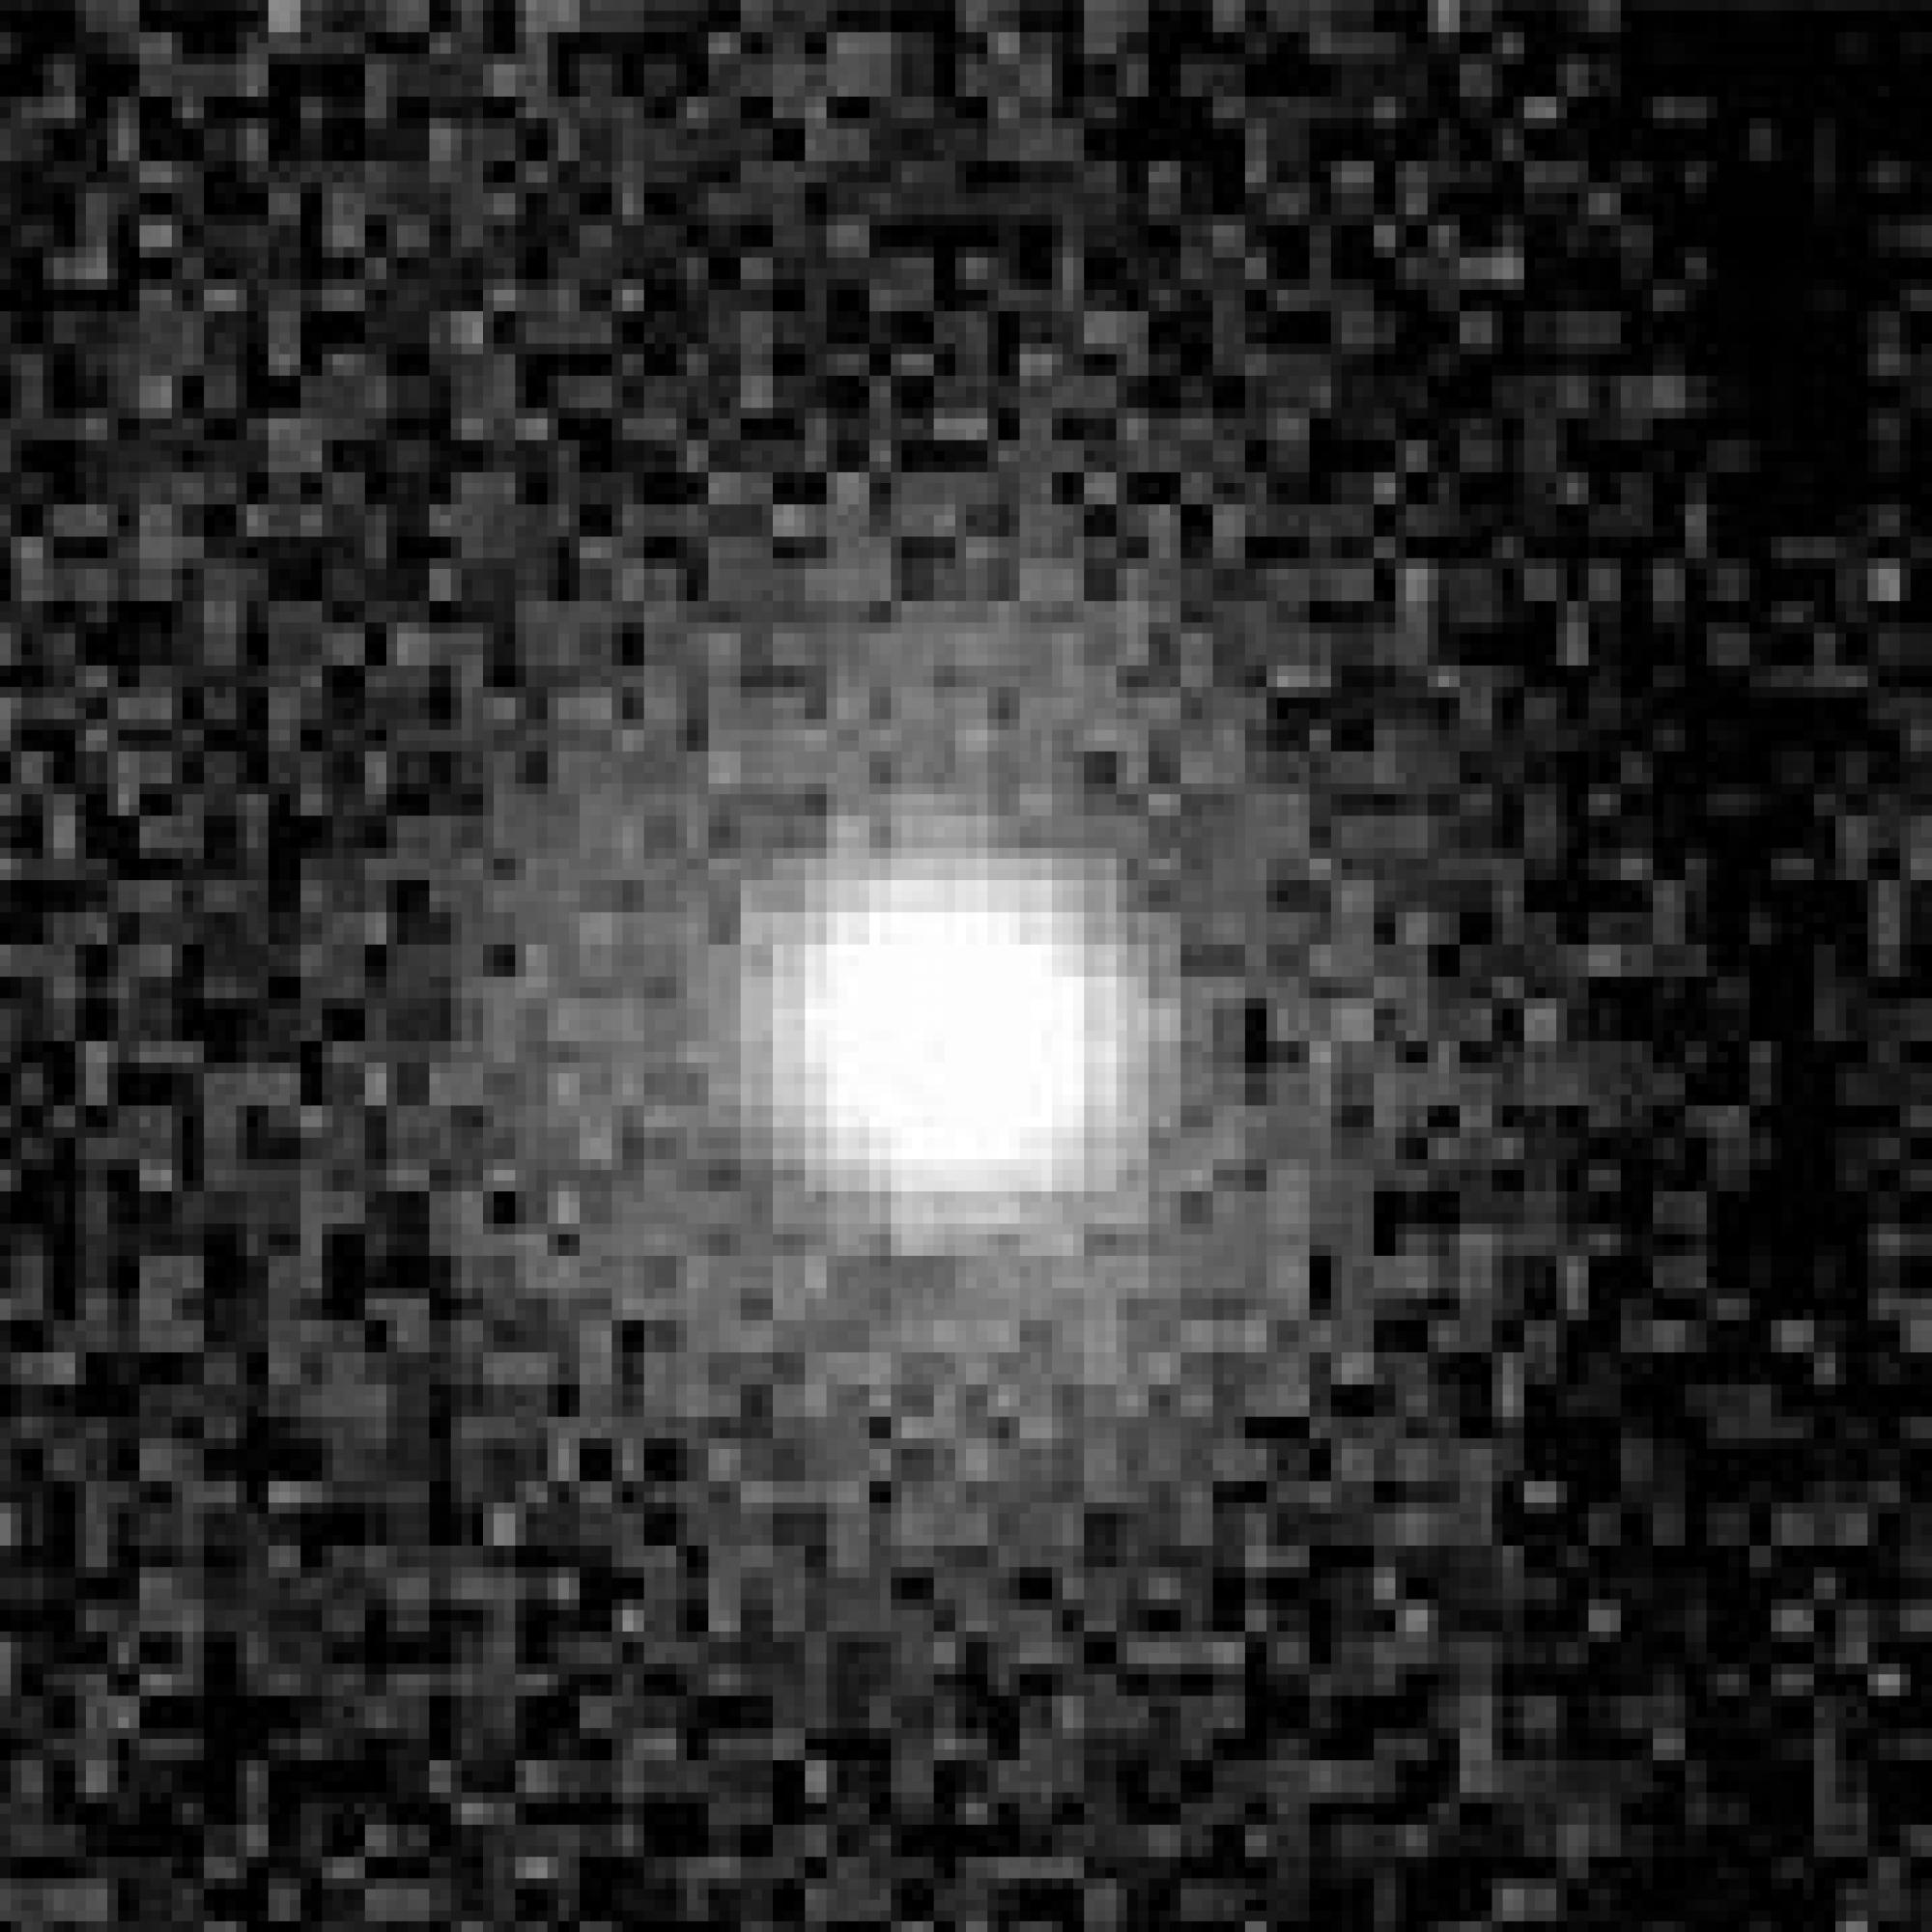 Star HD 100546, photographed at infrared wavelengths.